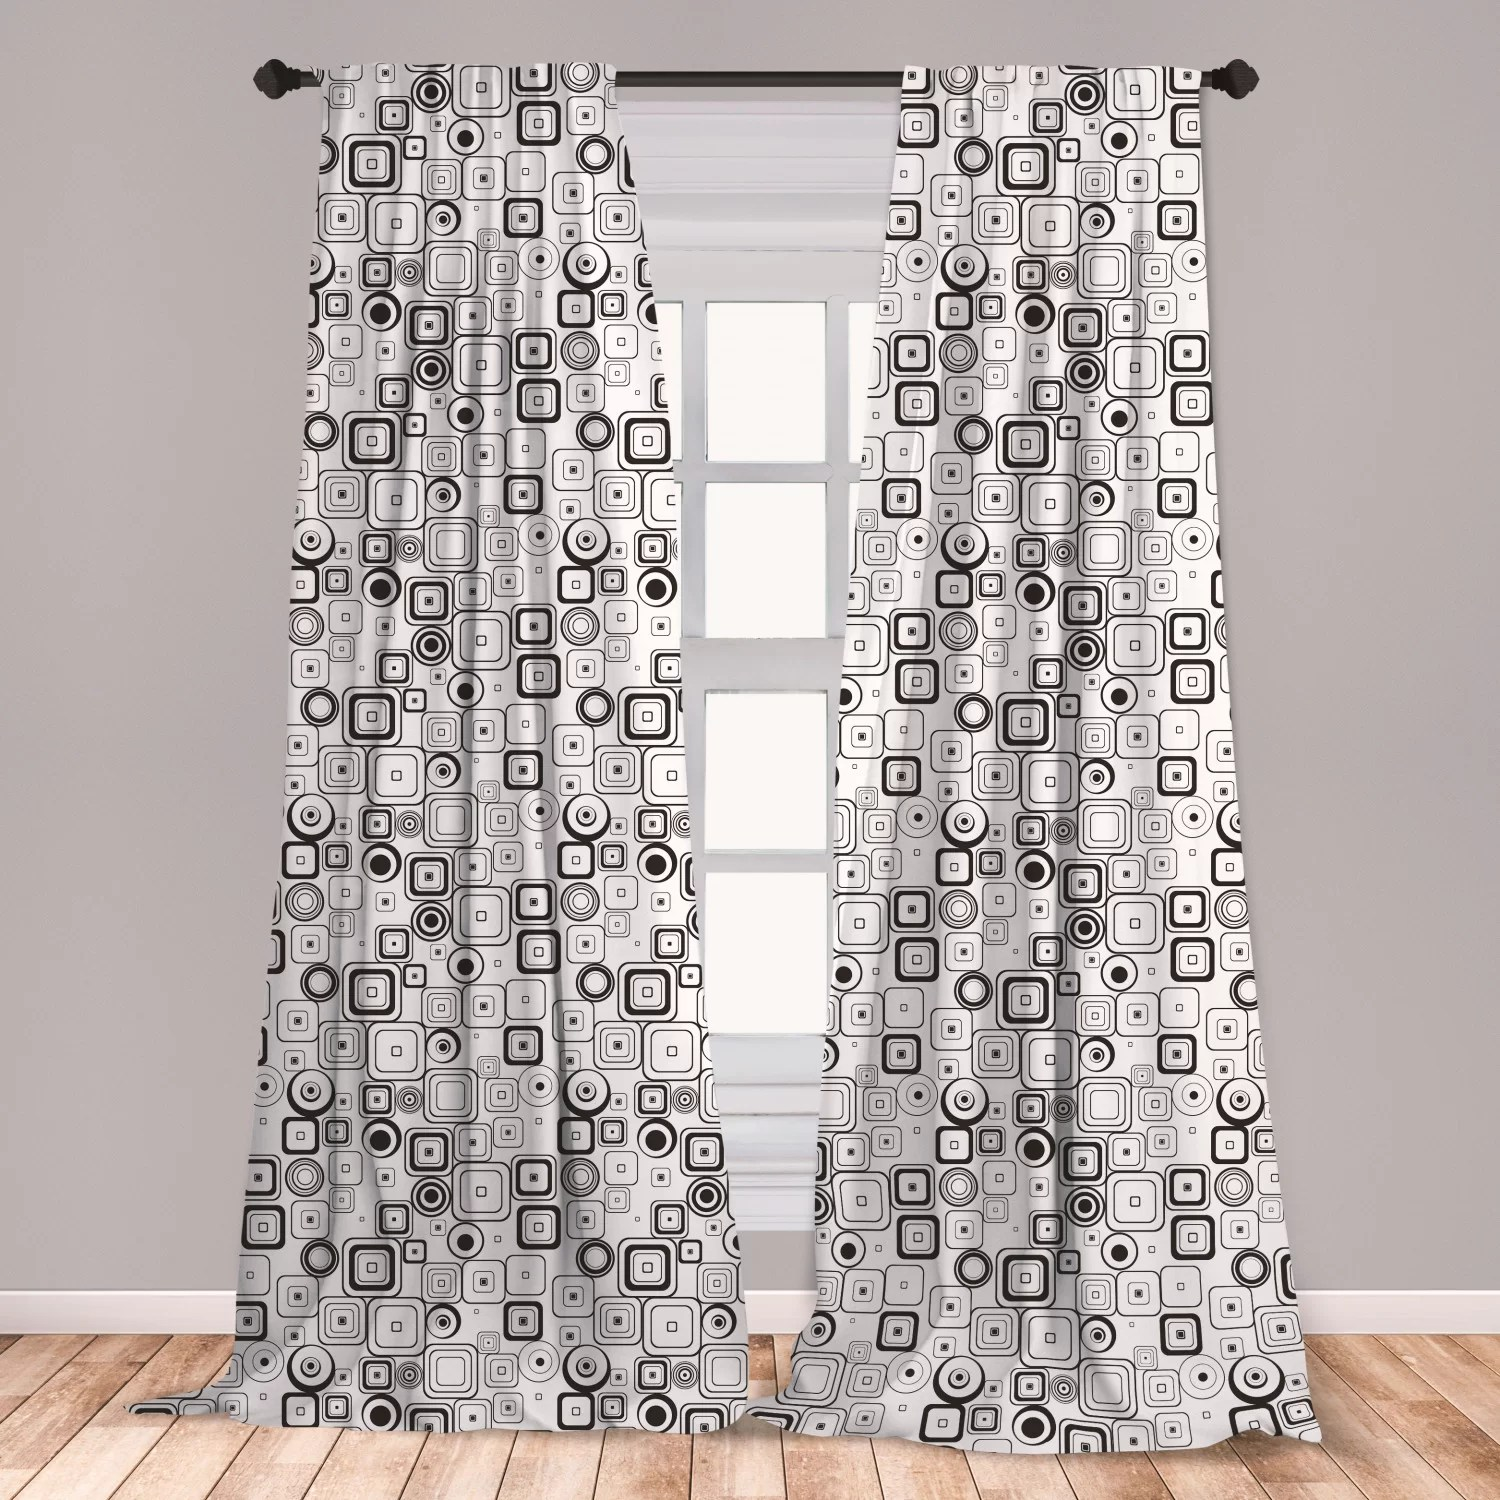 $24 window curtains for bedroom,black pattern for bedroom l 63 x w 5 home kitchen home dã â©cor products window treatments East Urban Home Ambesonne Black And White Curtains Retro Style Squares And Circles Sixties Seventies Urban Fashion Artwork Window Treatments 2 Panel Set For Living Room Bedroom Decor 56 X 95 Black White Wayfair